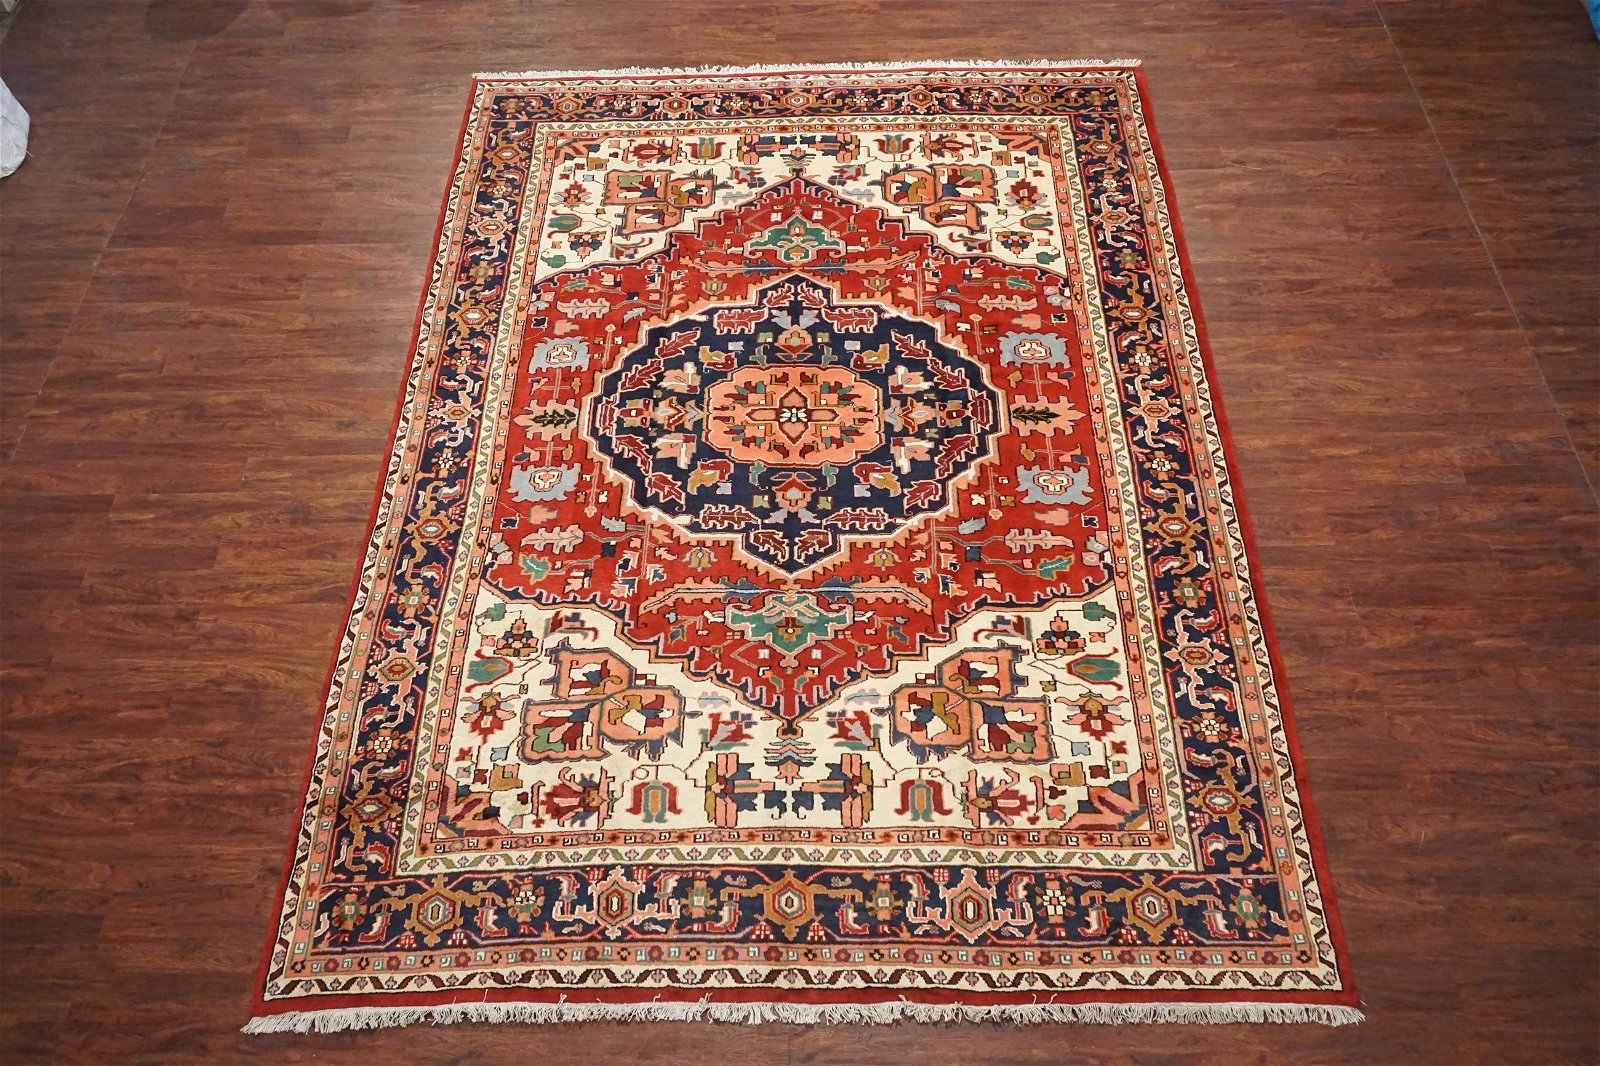 Vintage 10X13 Persian Heriz Area Rug Hand-Knotted